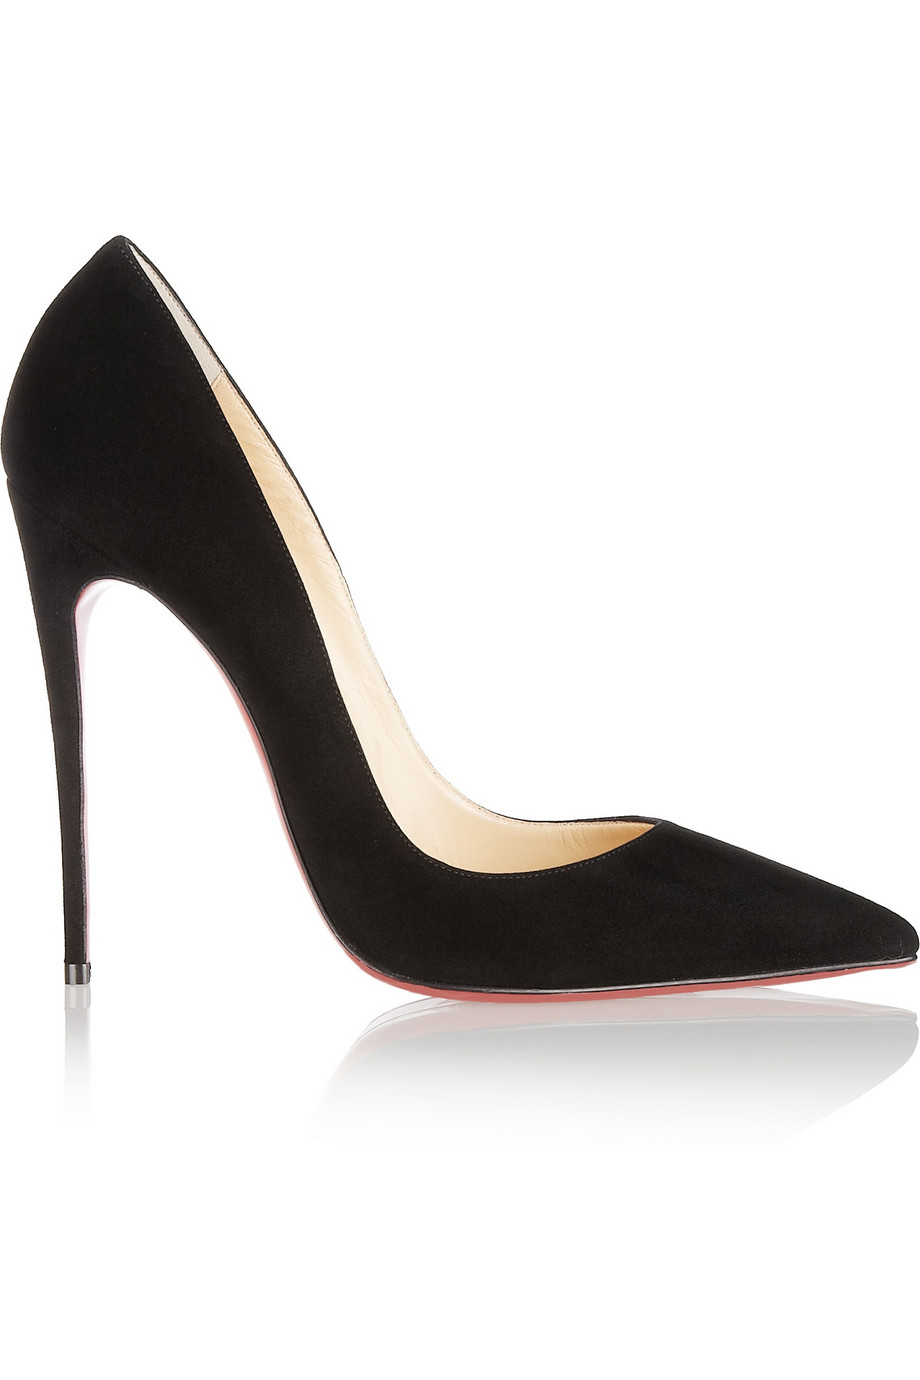 christian louboutin so kate 120 suede pumps in black lyst. Black Bedroom Furniture Sets. Home Design Ideas